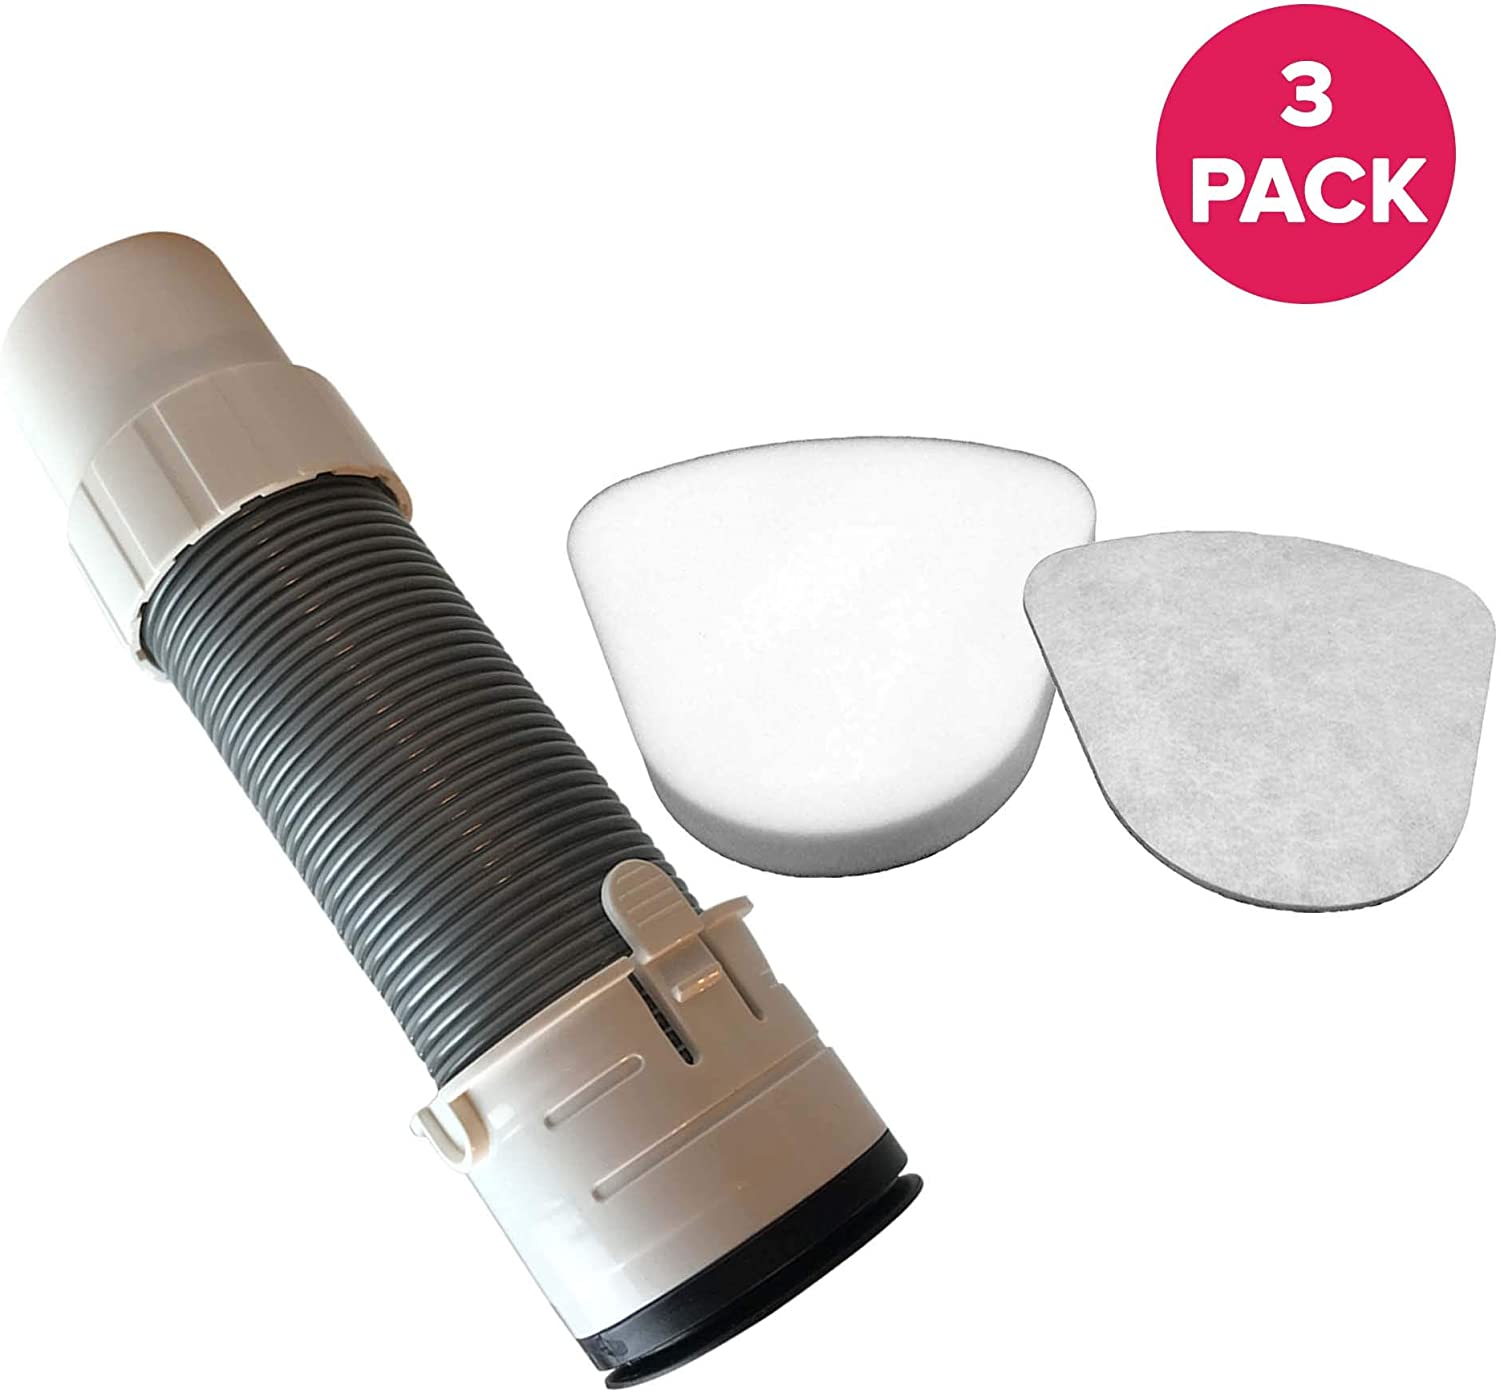 Think Crucial Replacement for Shark NV350 Floor Nozzle Hose, Foam & Felt Filters, Compatible with Part # XHF350 & 193FFJ